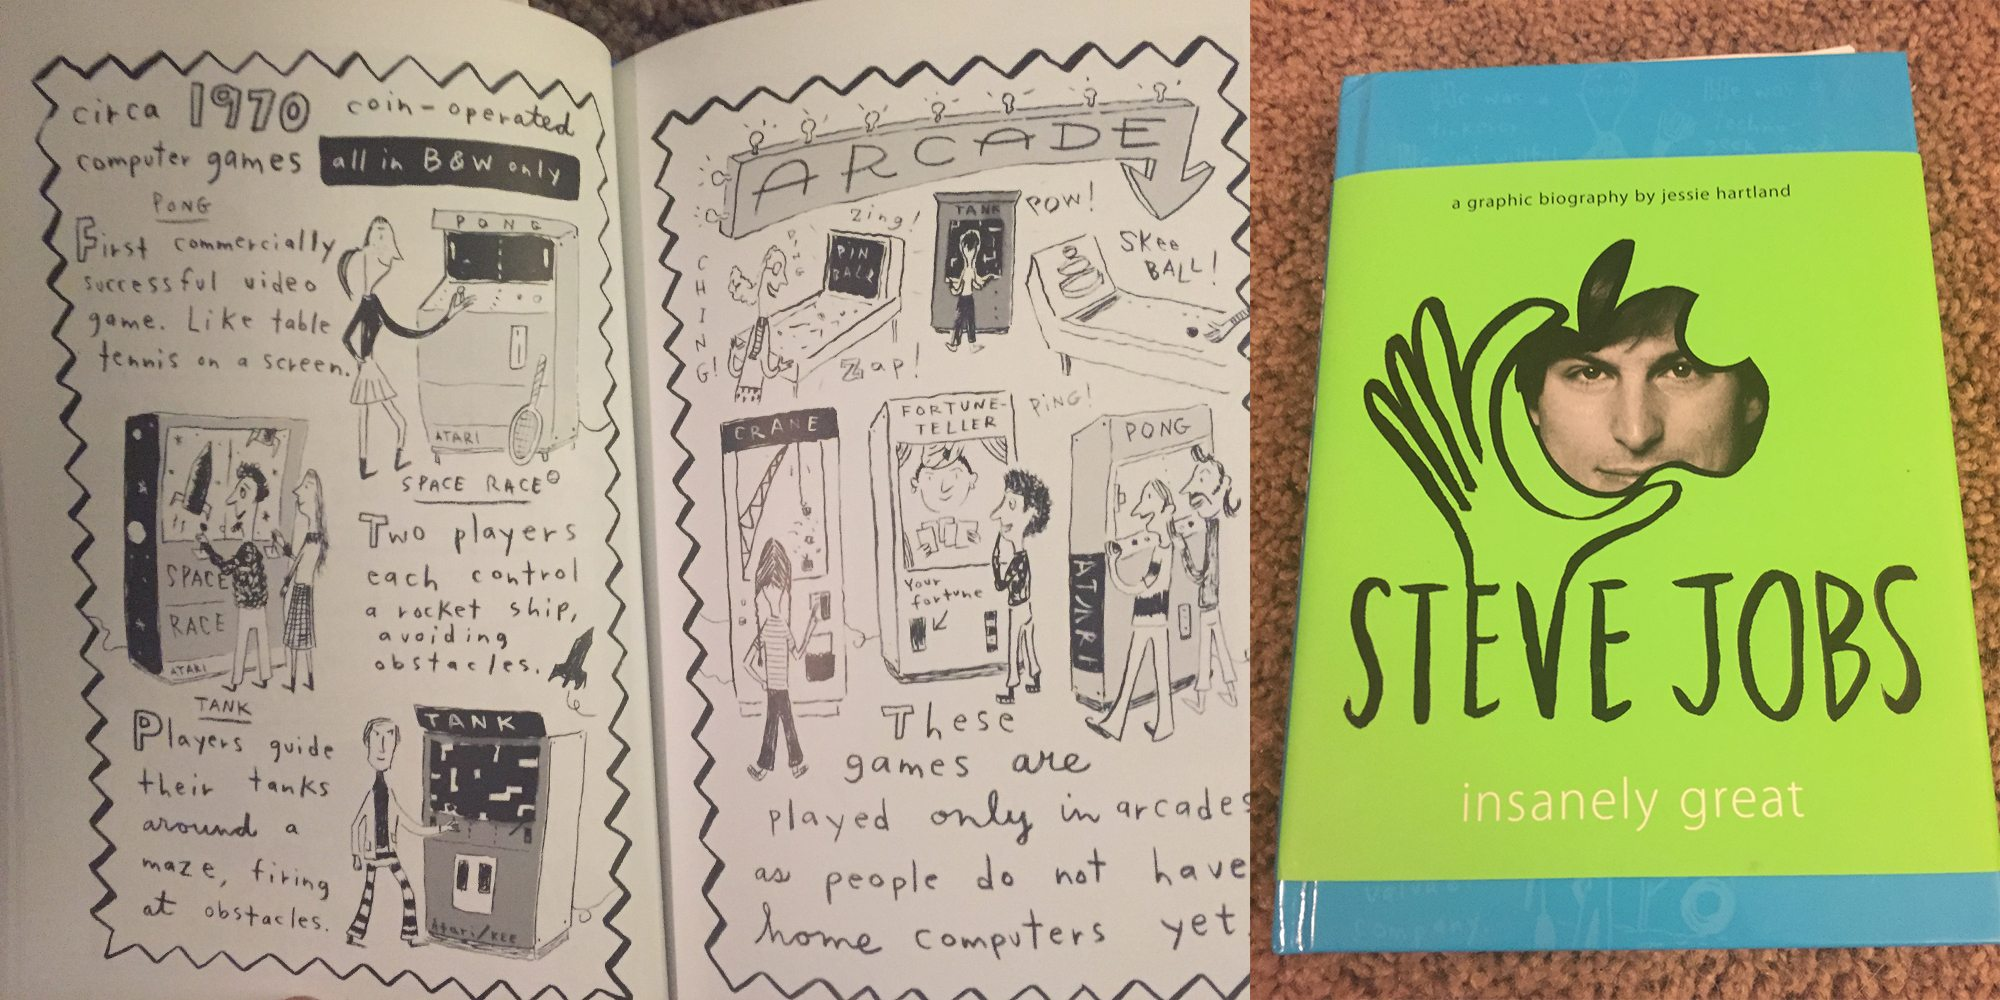 Steve Jobs Graphic Bio Is Insanely Great… For Older Kids